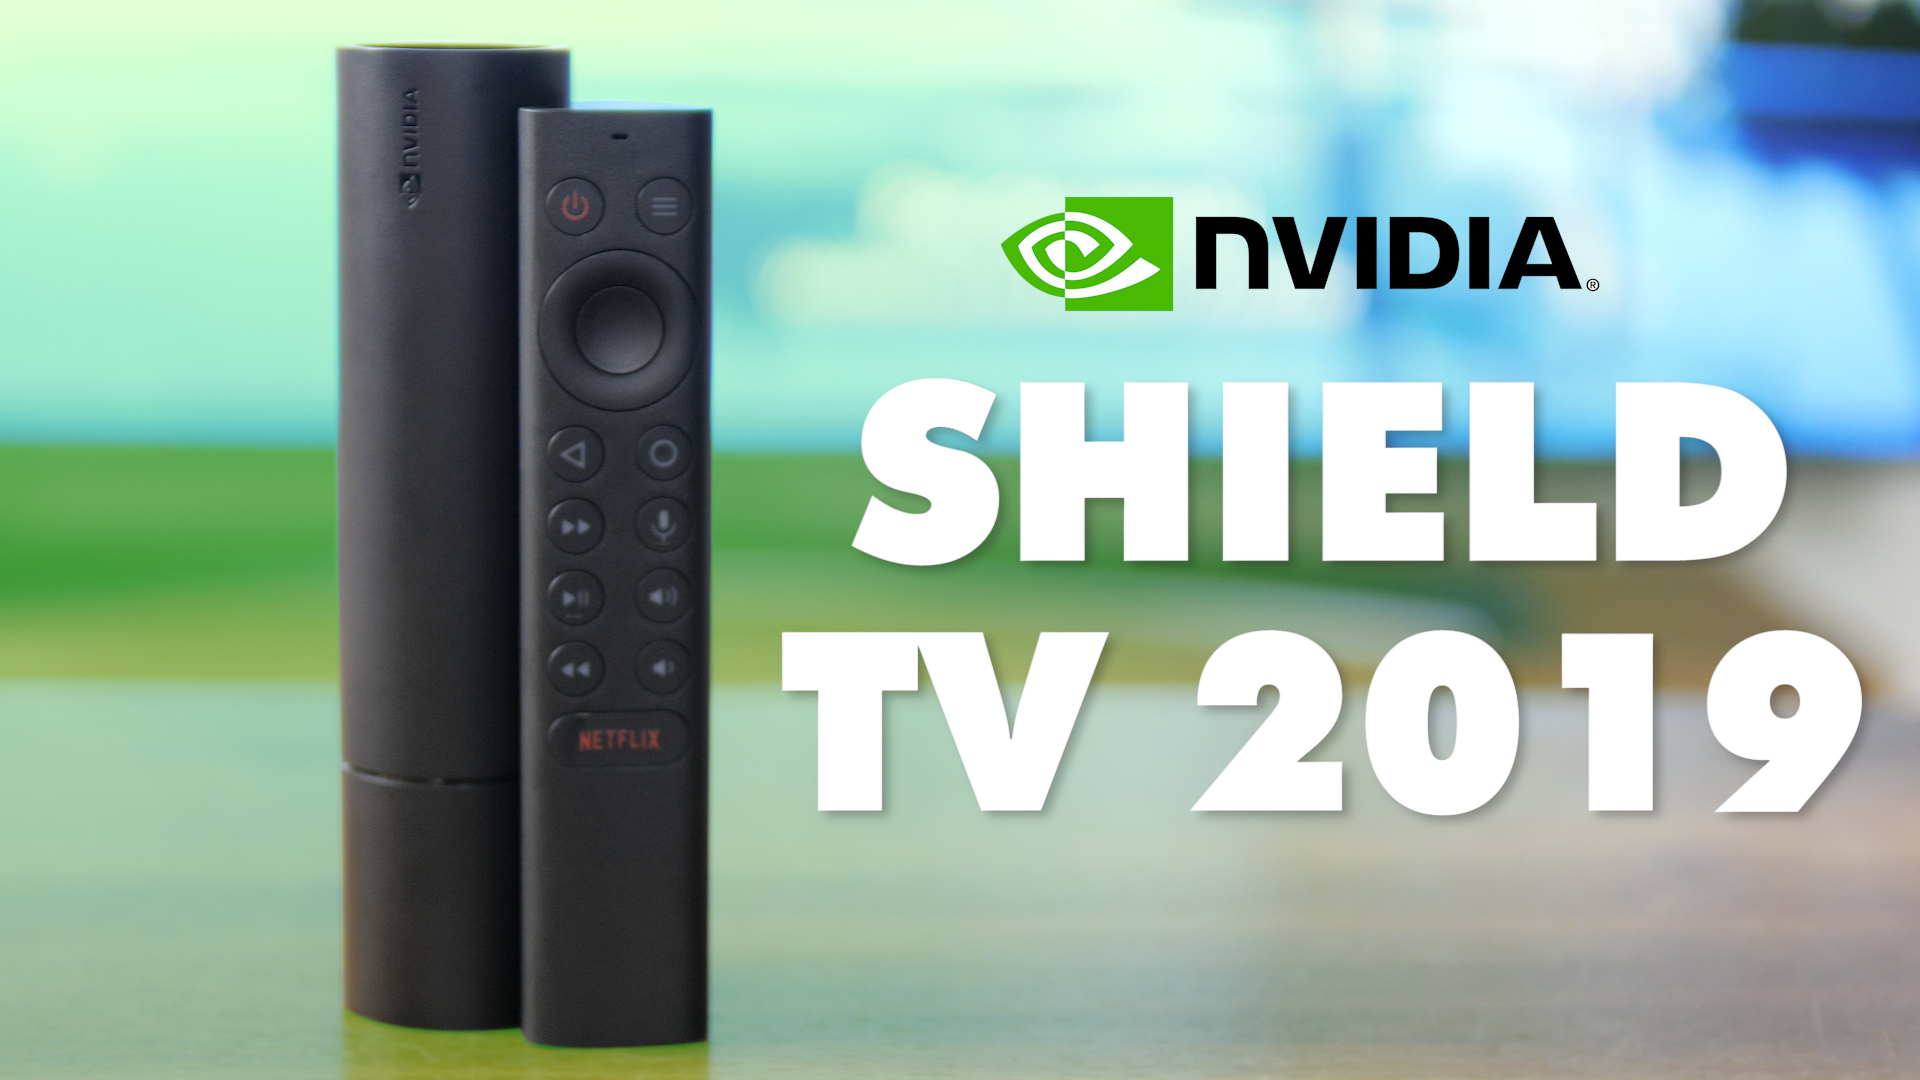 Shield TV 2019 : on DÉCOUVRE la nouvelle box multimédia de Nvidia